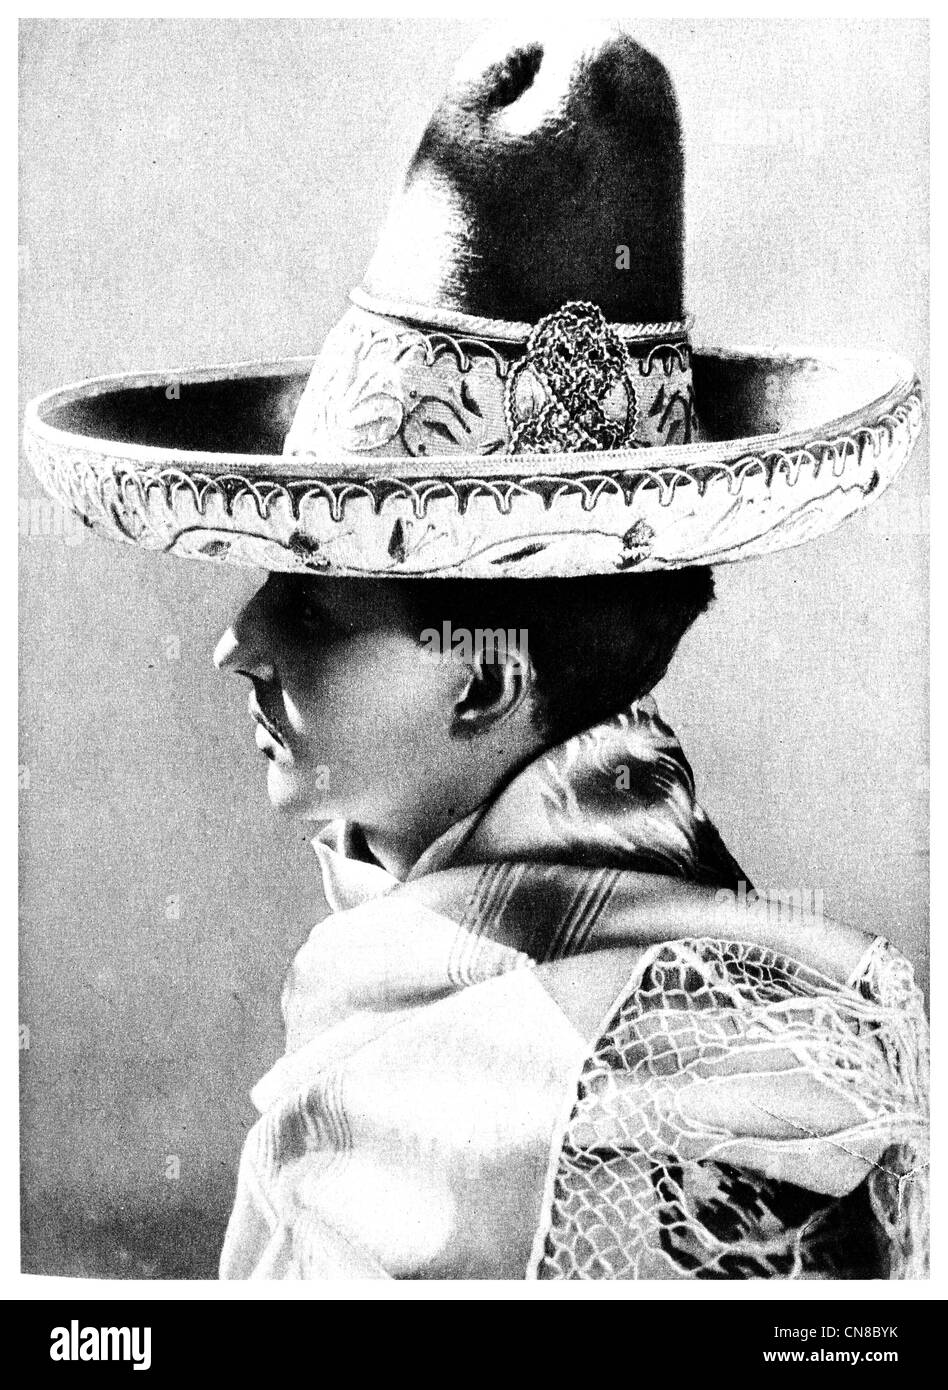 First published 1914 tMexican Charro and Hat traditional horseman from Mexico, - Stock Image